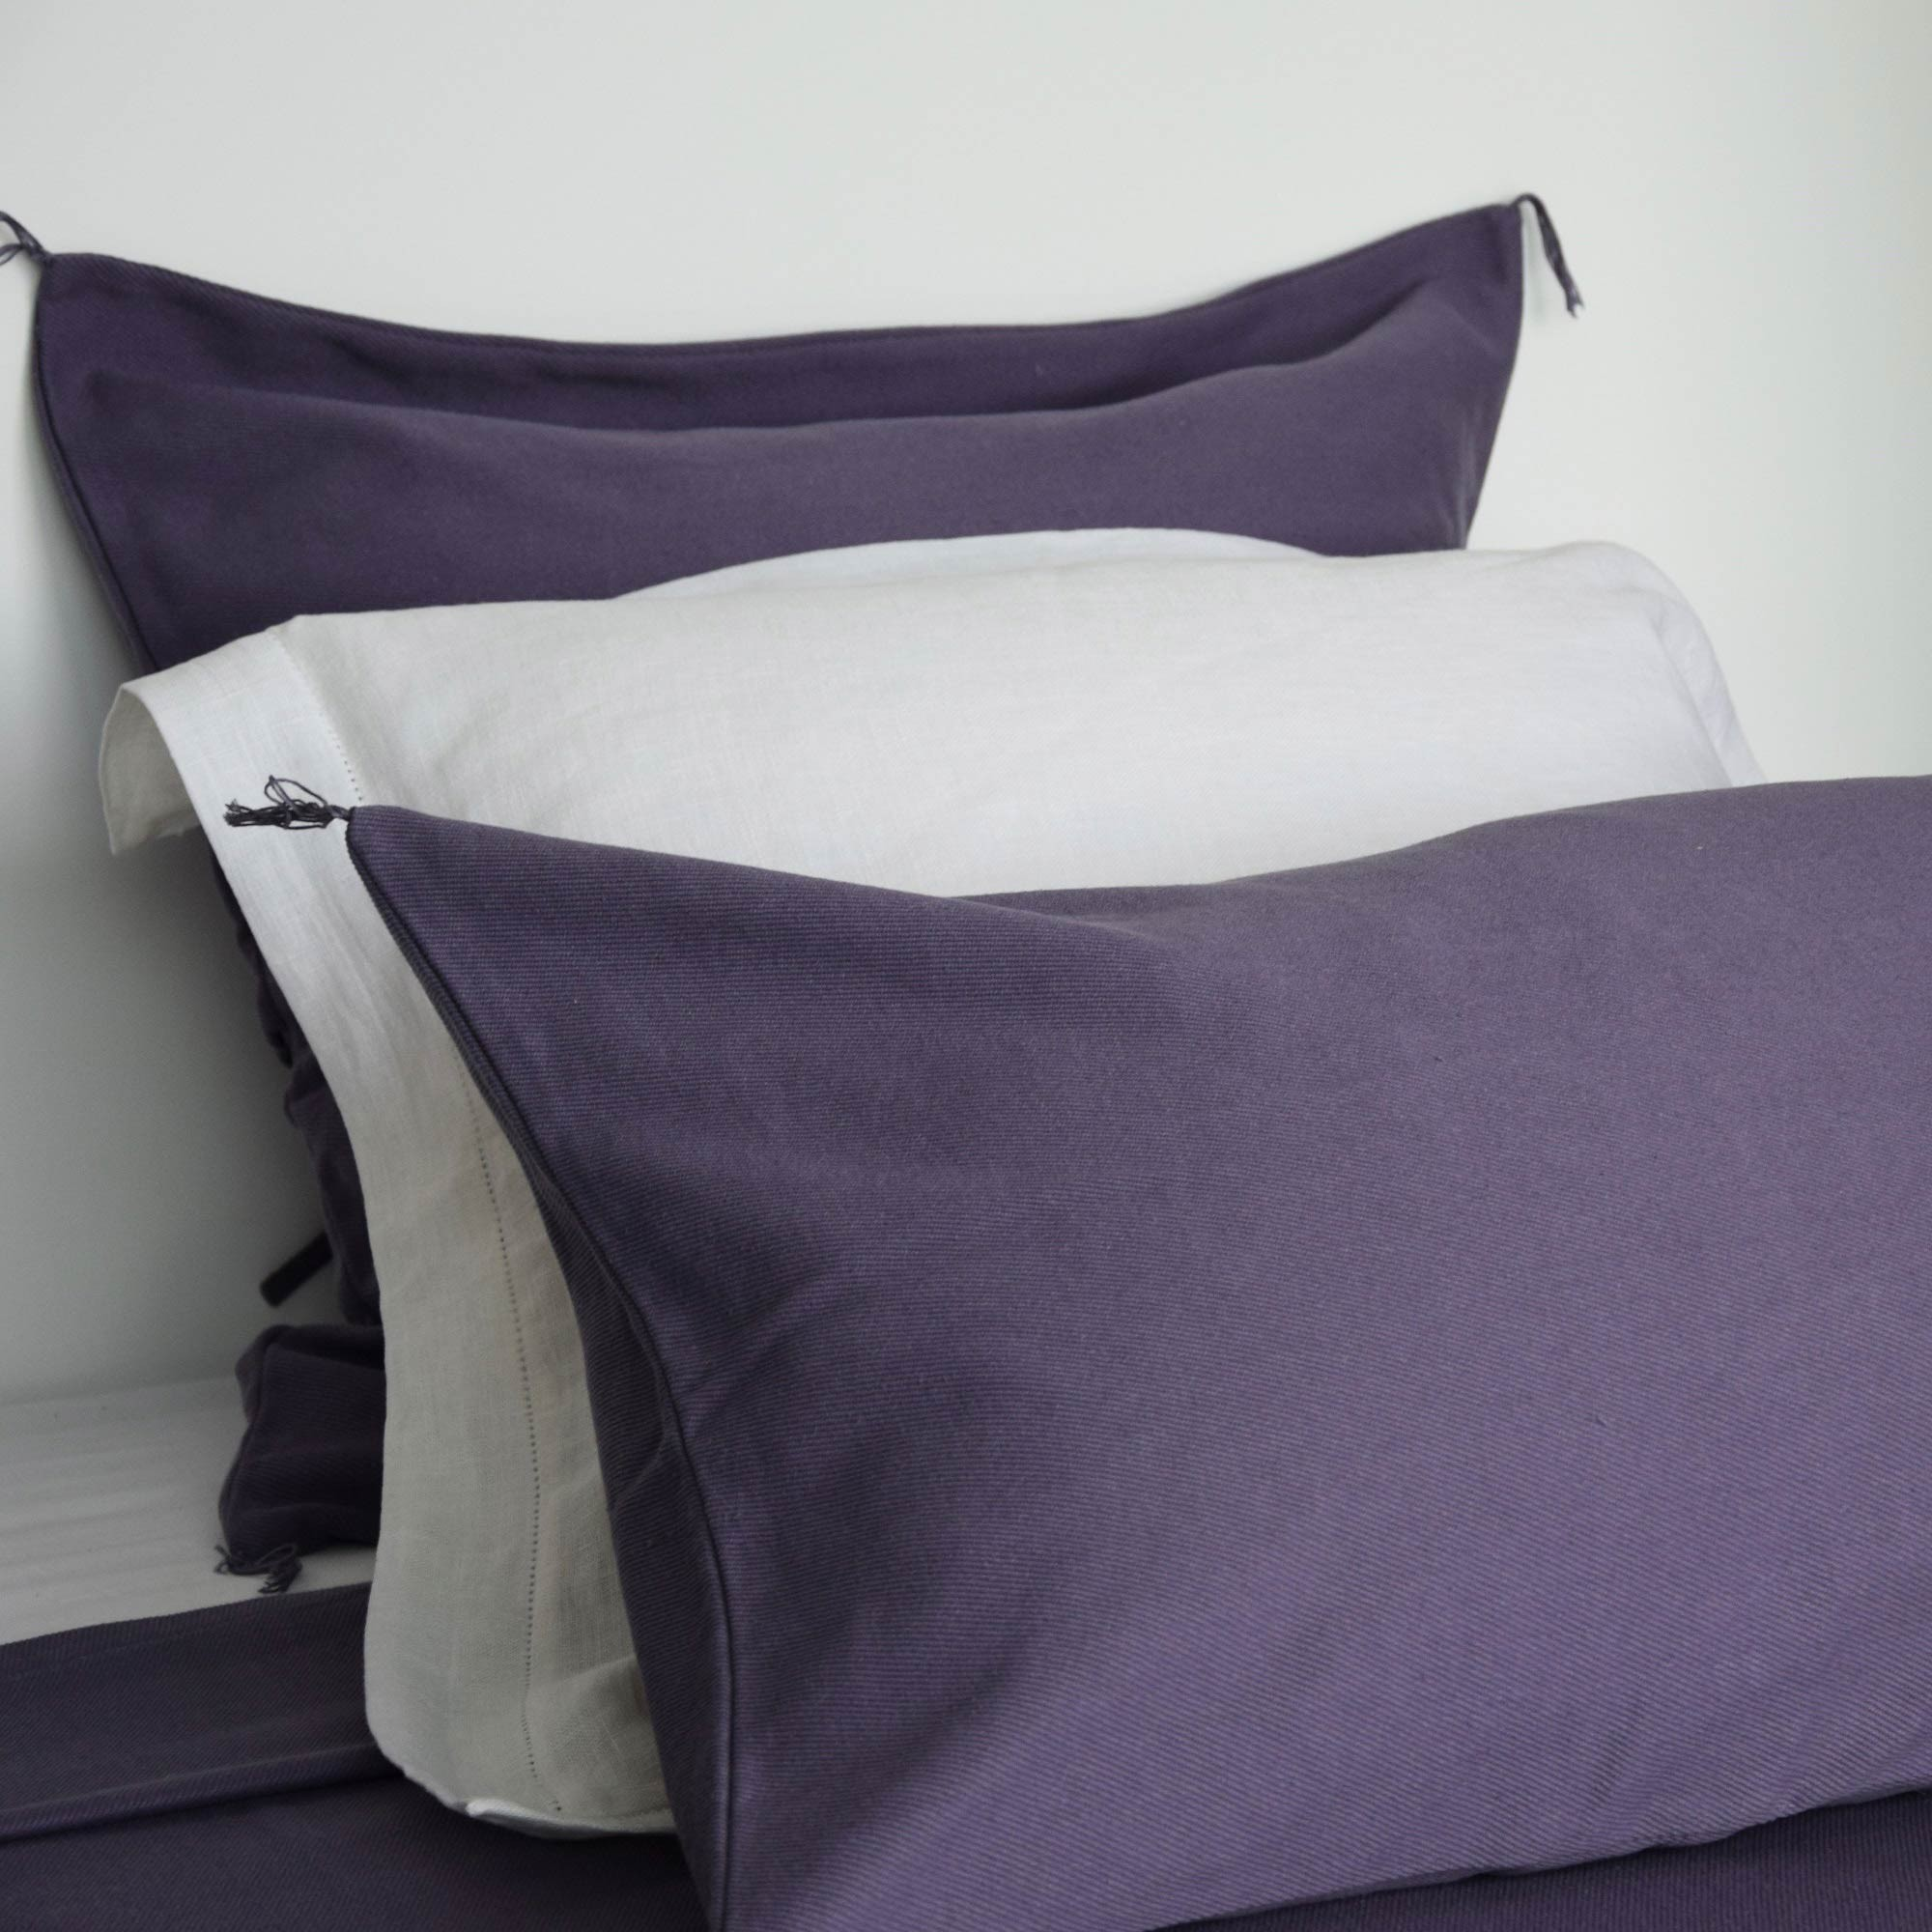 dessus de lit en coton stone washed violet. Black Bedroom Furniture Sets. Home Design Ideas